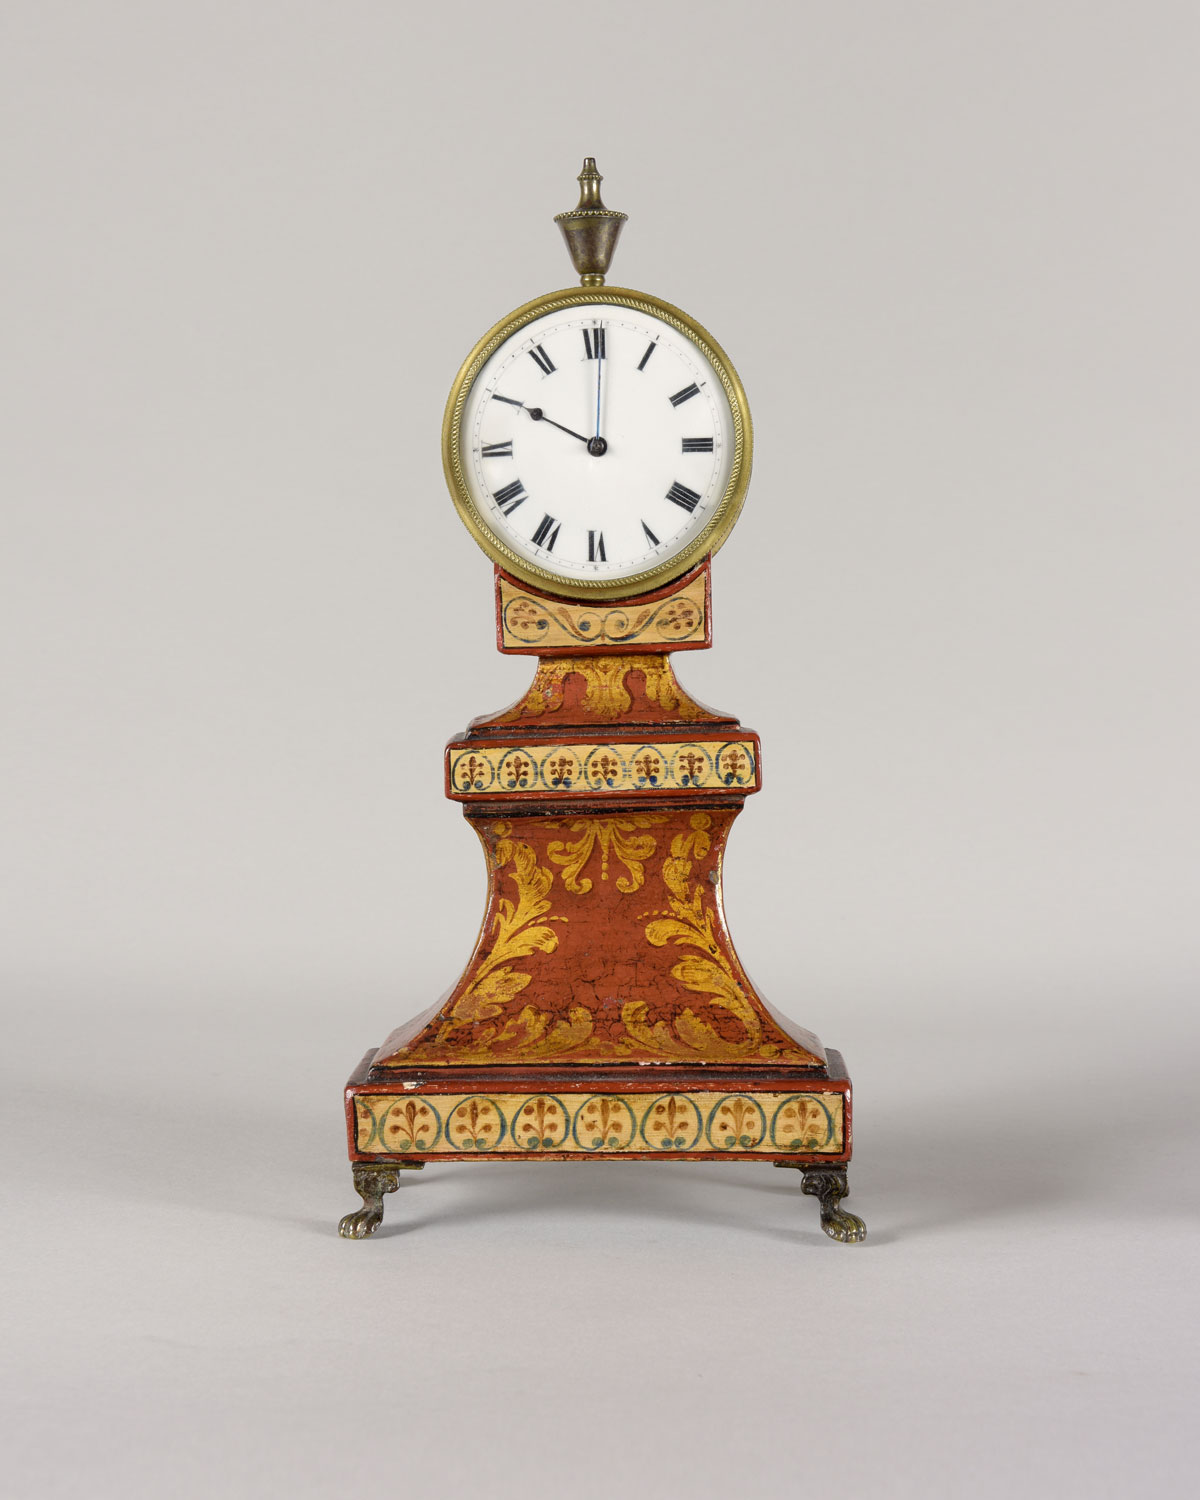 CONYERS DUNLOP. A Regency period balloon timepiece.